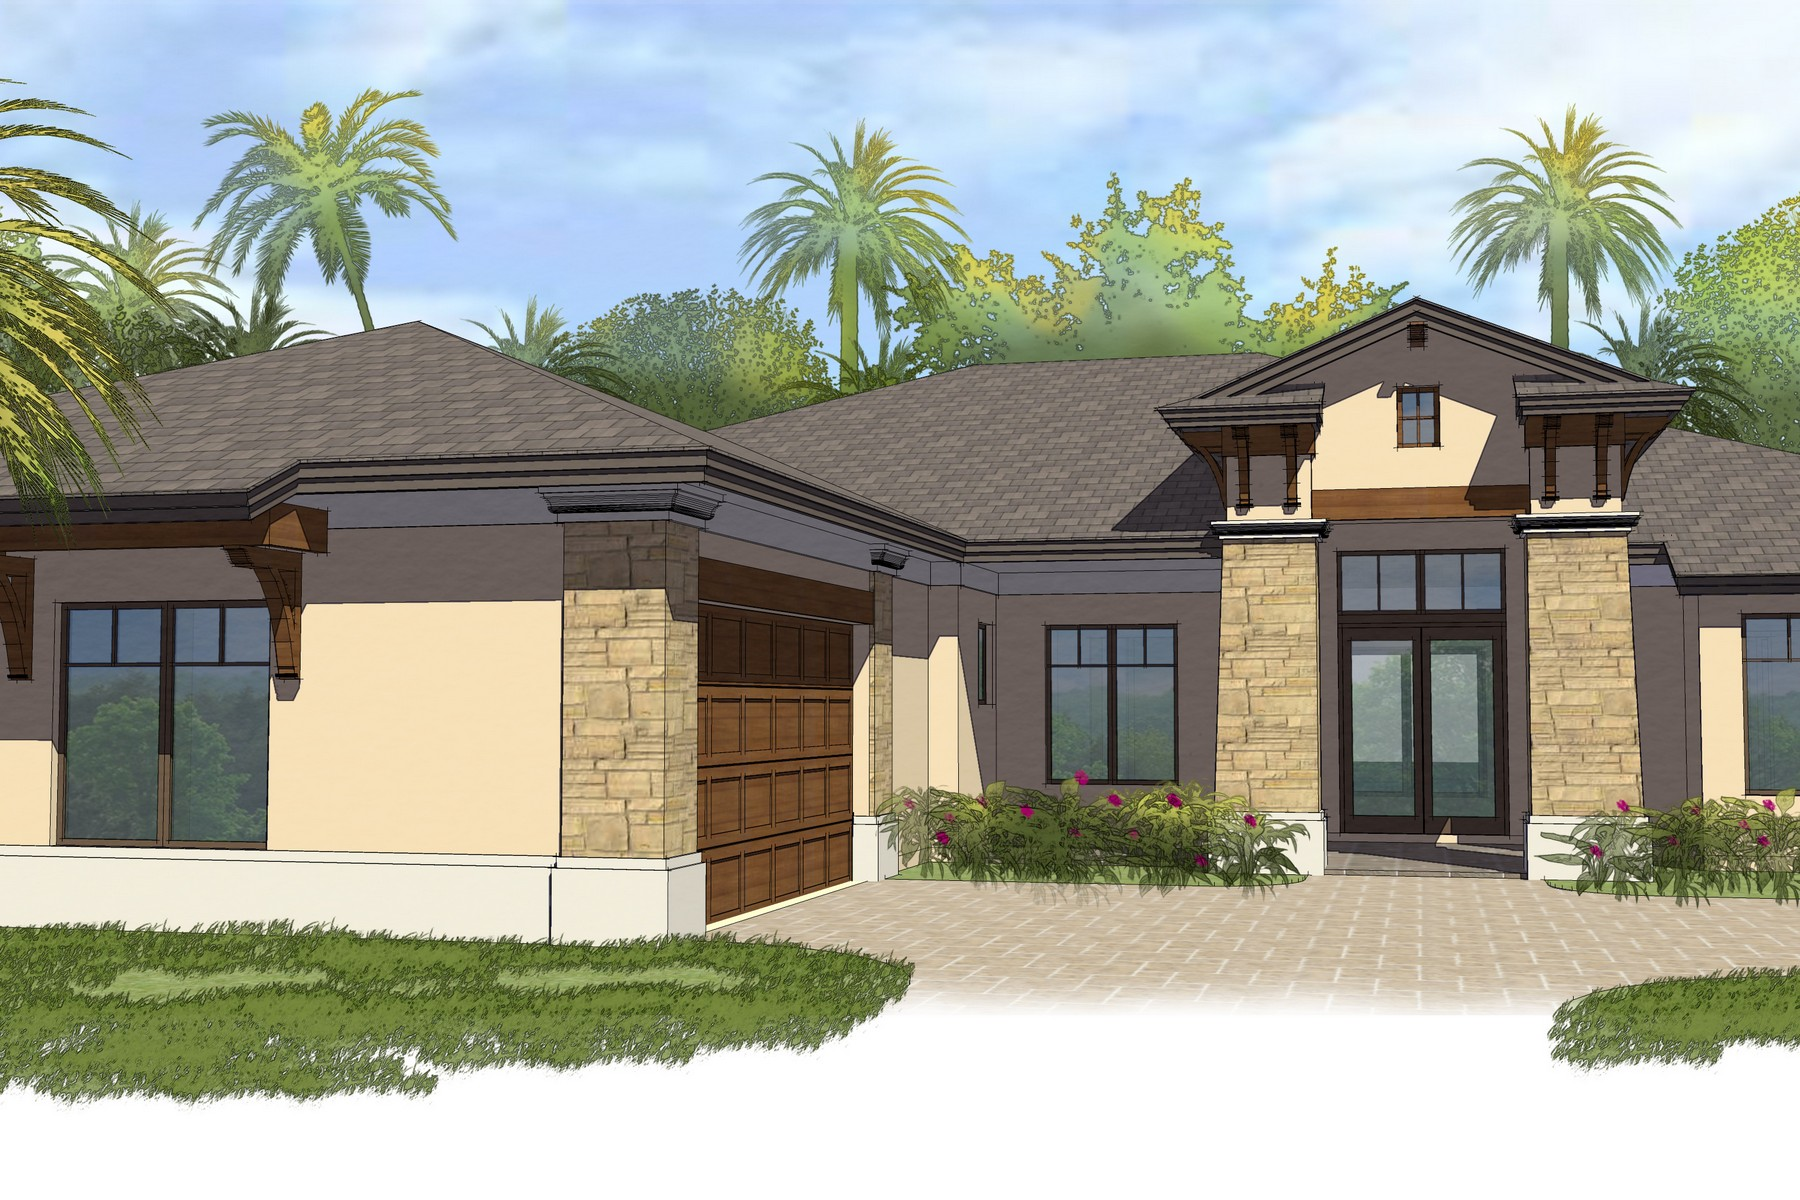 獨棟家庭住宅 為 出售 在 Luxury New Home in the Reserve at Grand Harbor 2373 Grand Harbor Reserve Square Vero Beach, 佛羅里達州 32967 美國